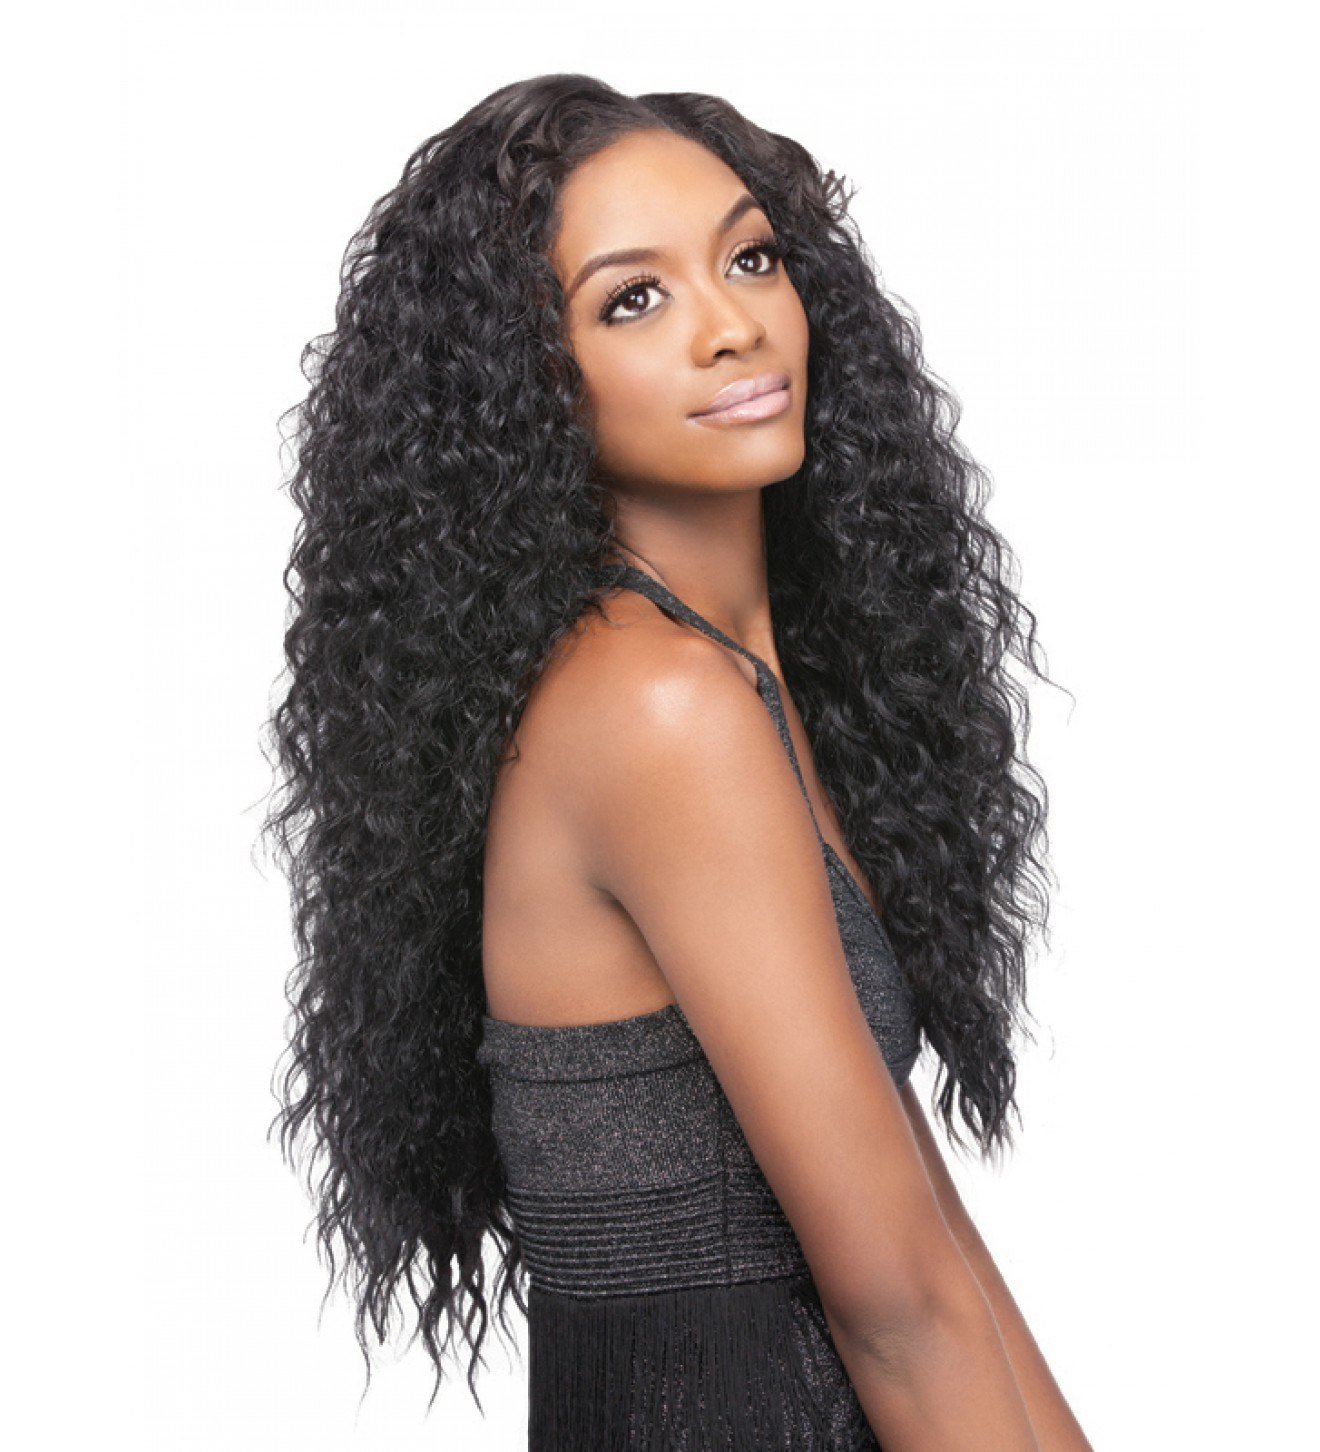 New Brazilian Remy Hair The Curly Look Chocolate Informed Ideas With Pictures